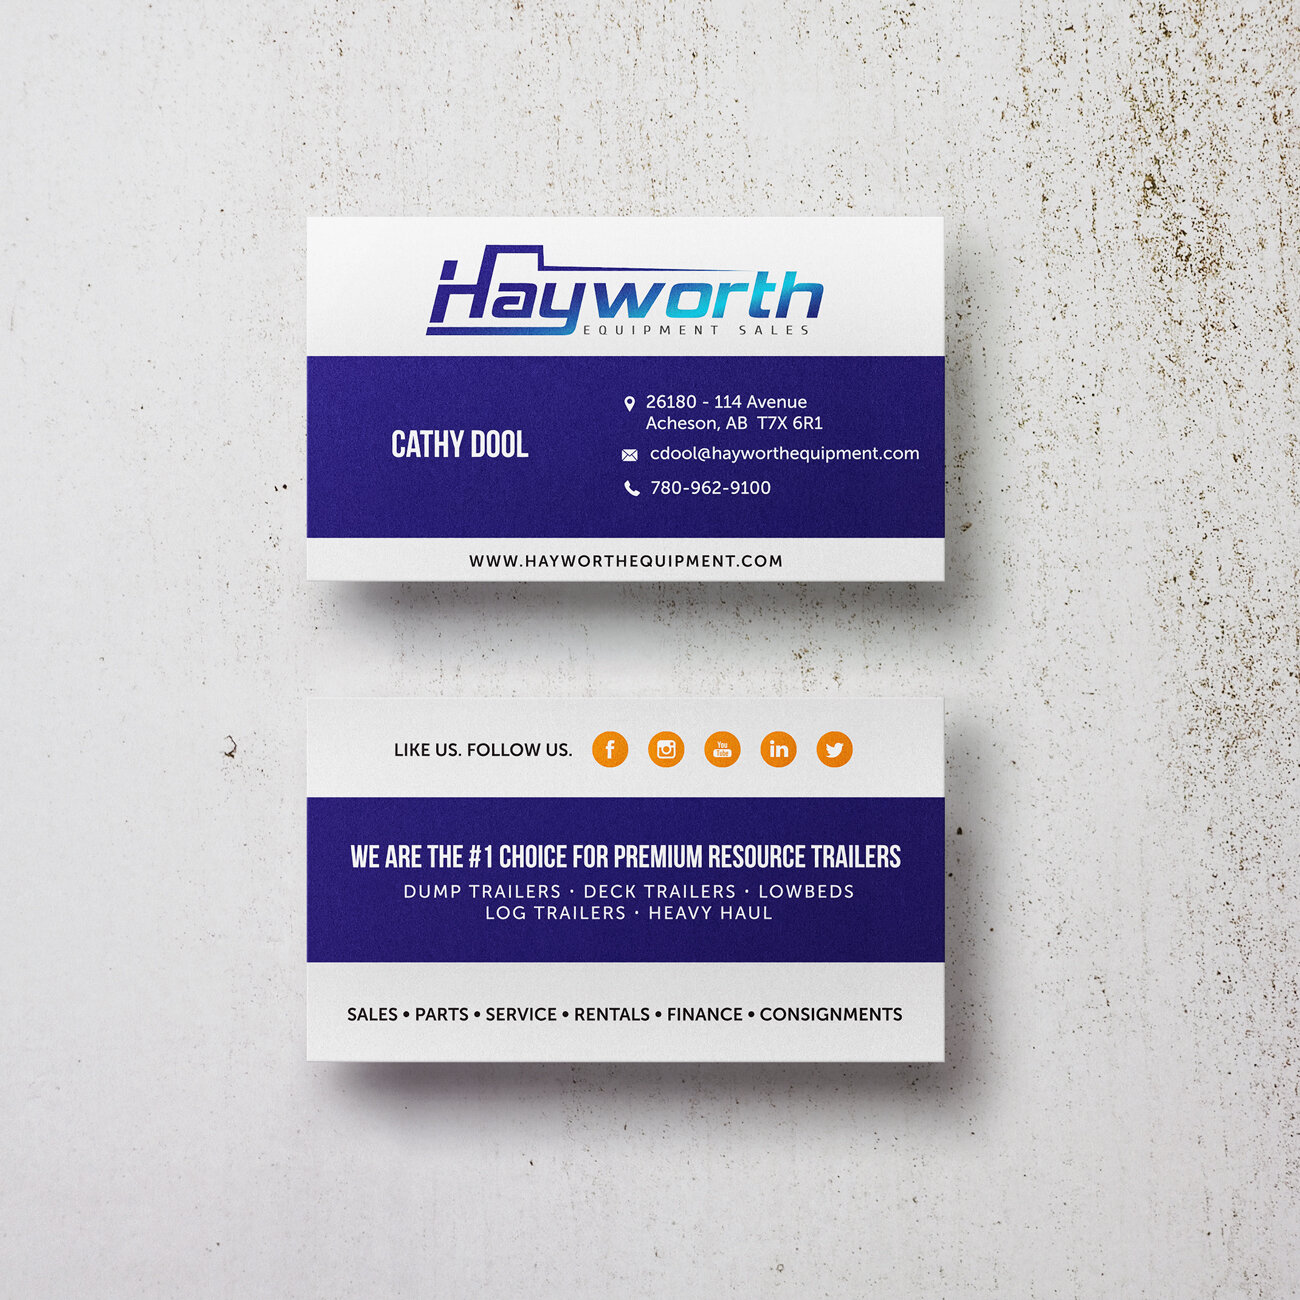 Hayworth-Business-Cards.jpg